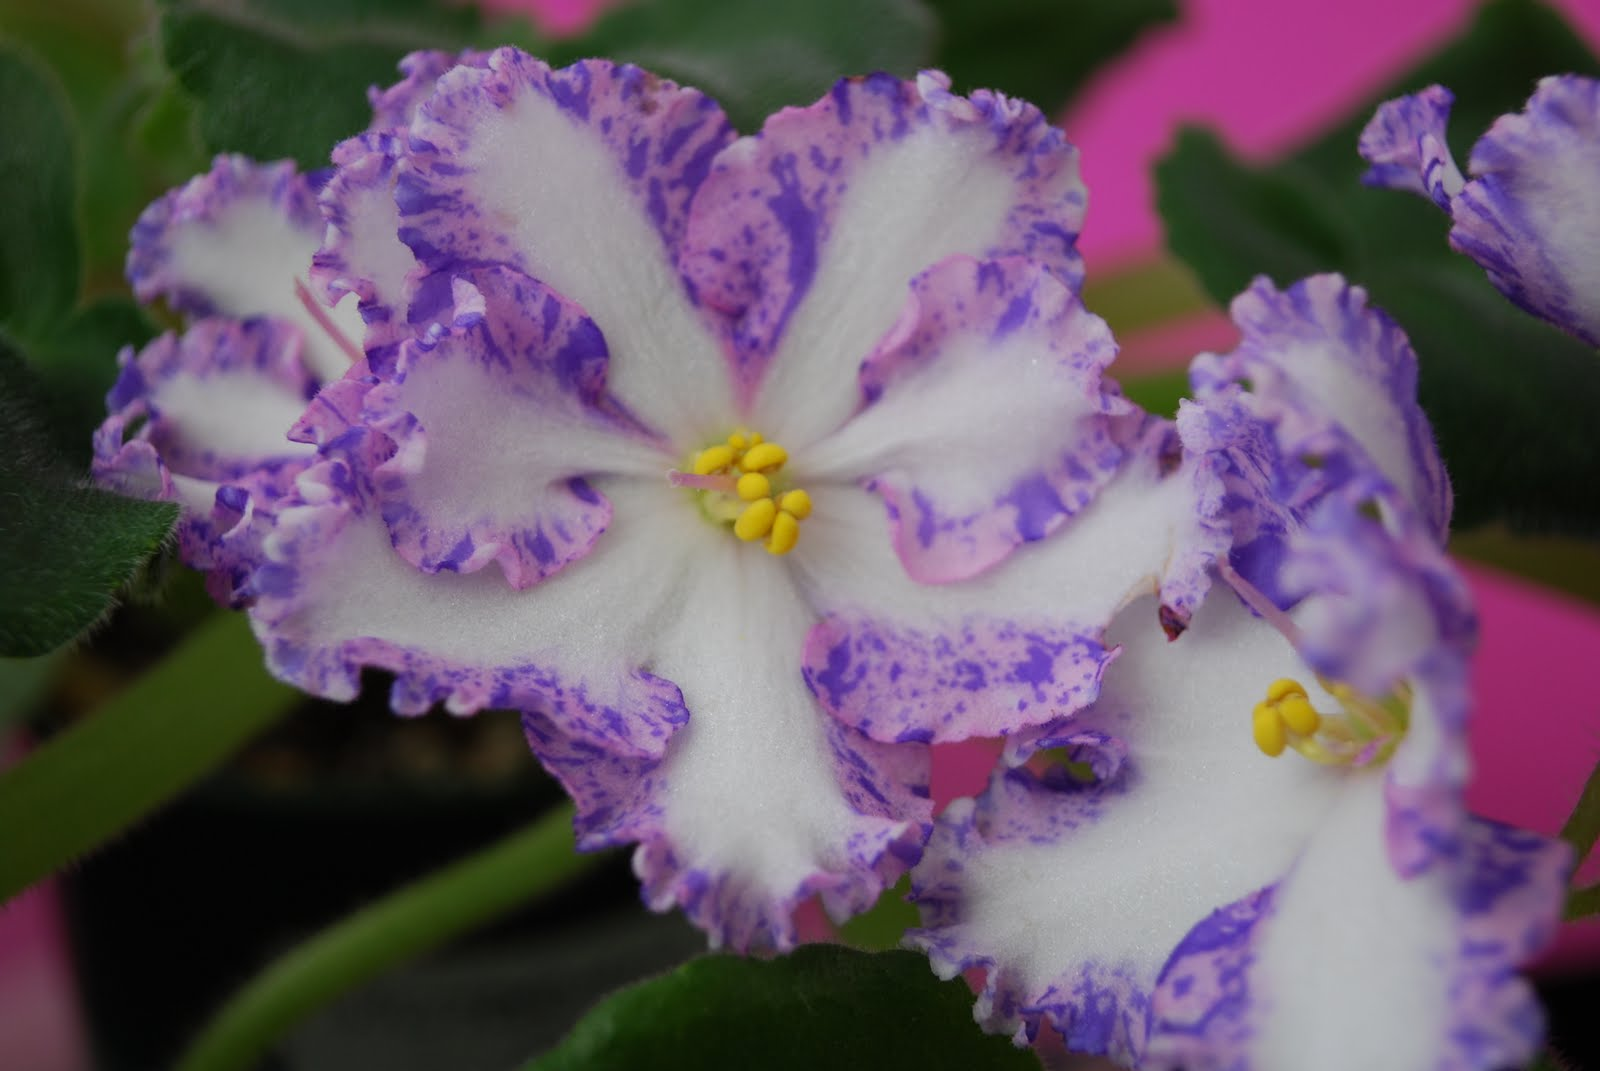 the violets African violets in all types, colors, and sizes and how to grow and care for them growing and shipping african violets to everywhere since 1985.